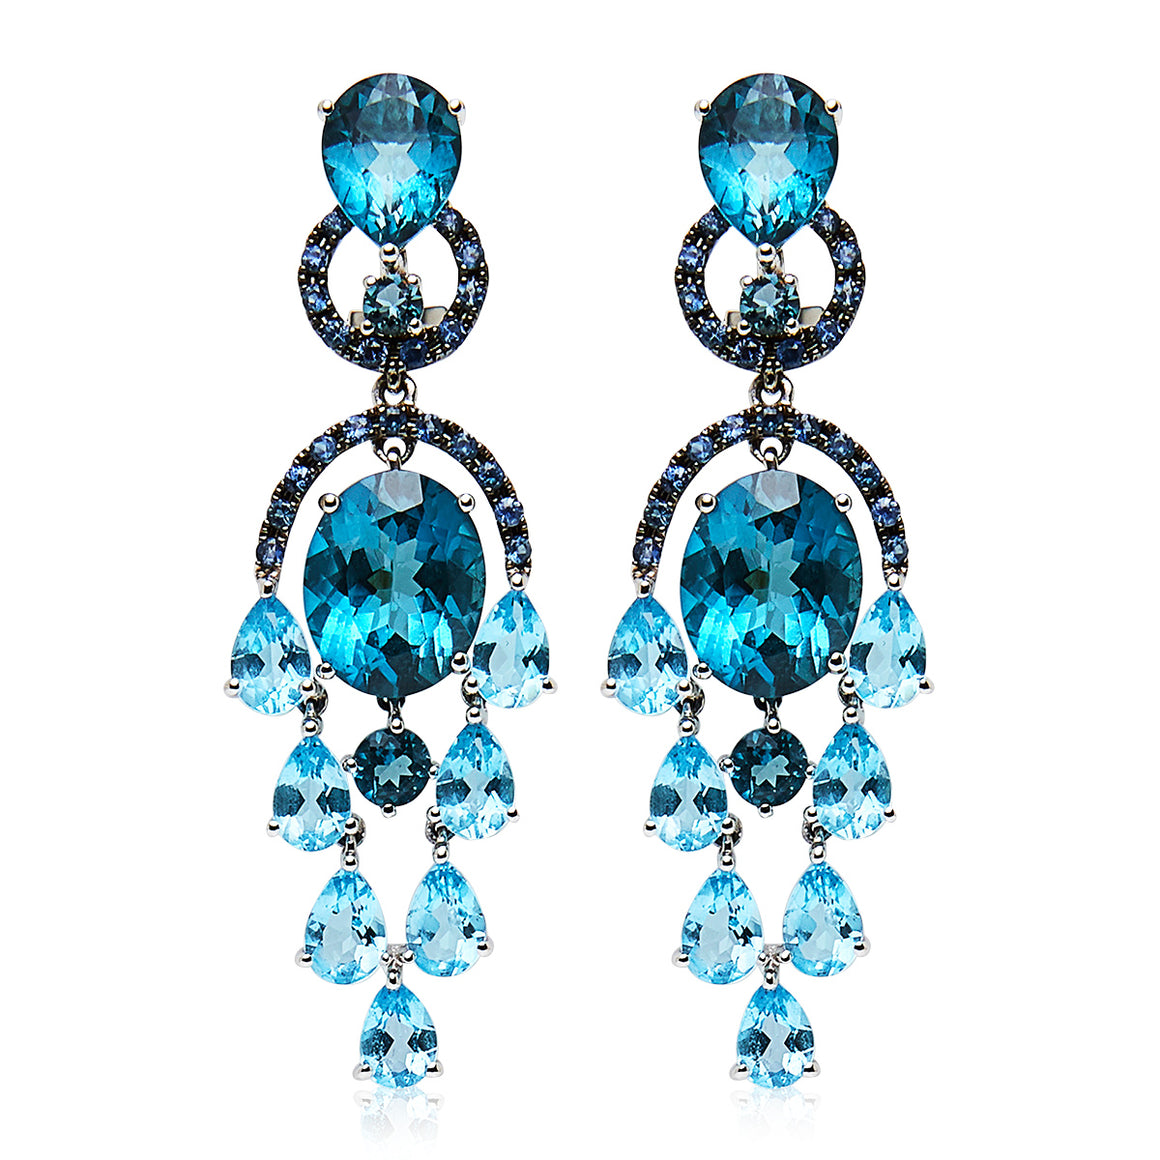 London Blue Topaz & Sapphire 'Florence' Earrings - Gemma Stone Jewellery